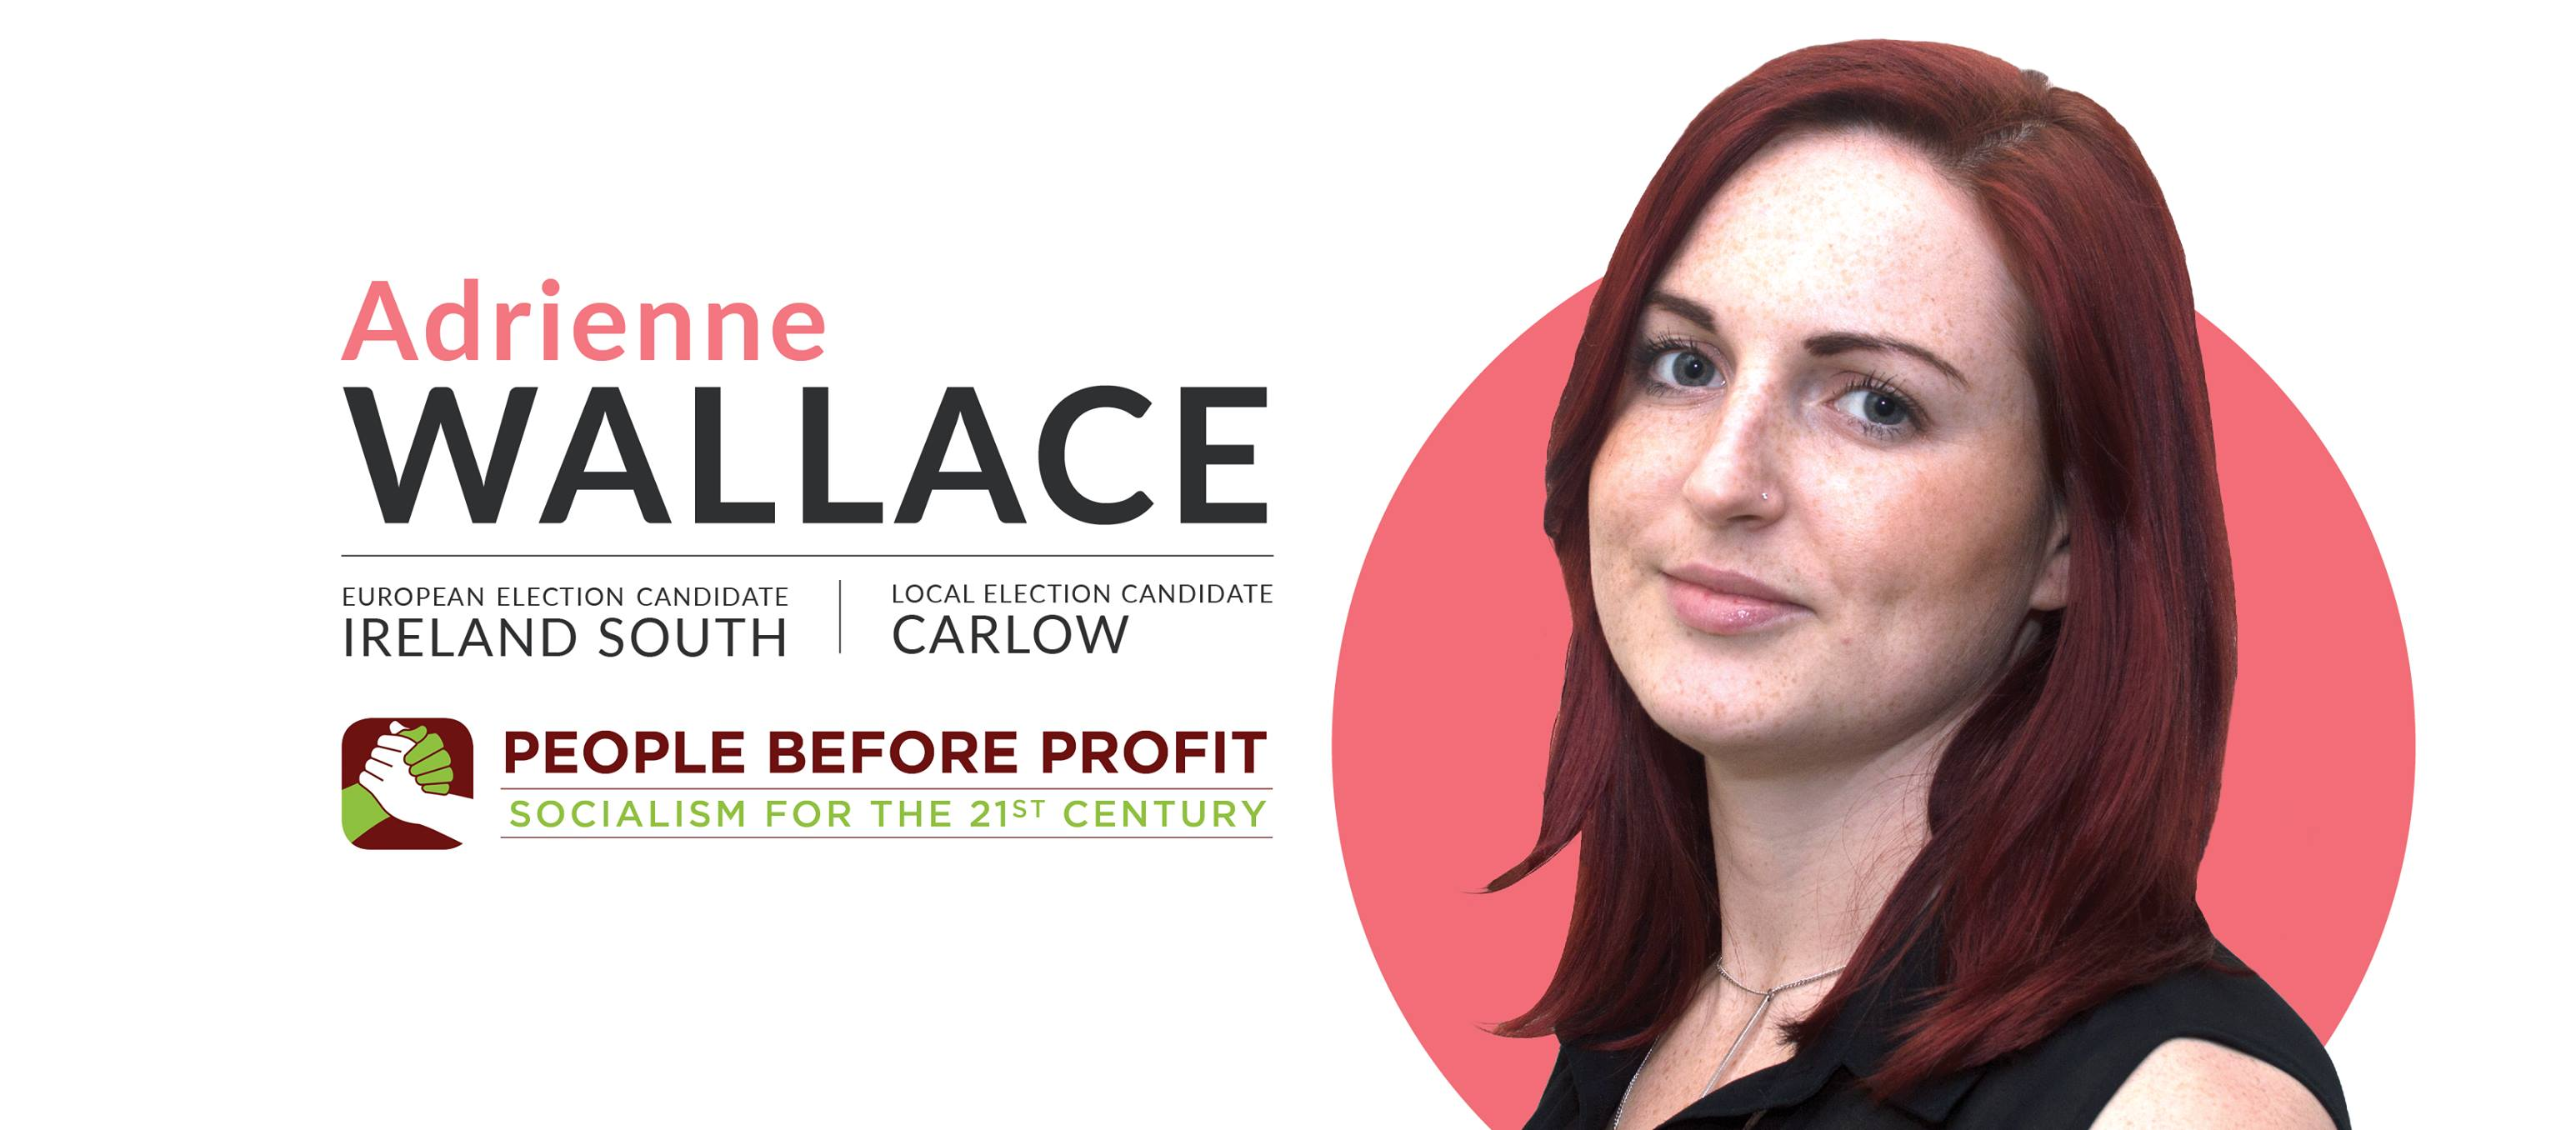 Adrienne Wallace PBP MEP Ireland South and Local Election Candidate Carlow